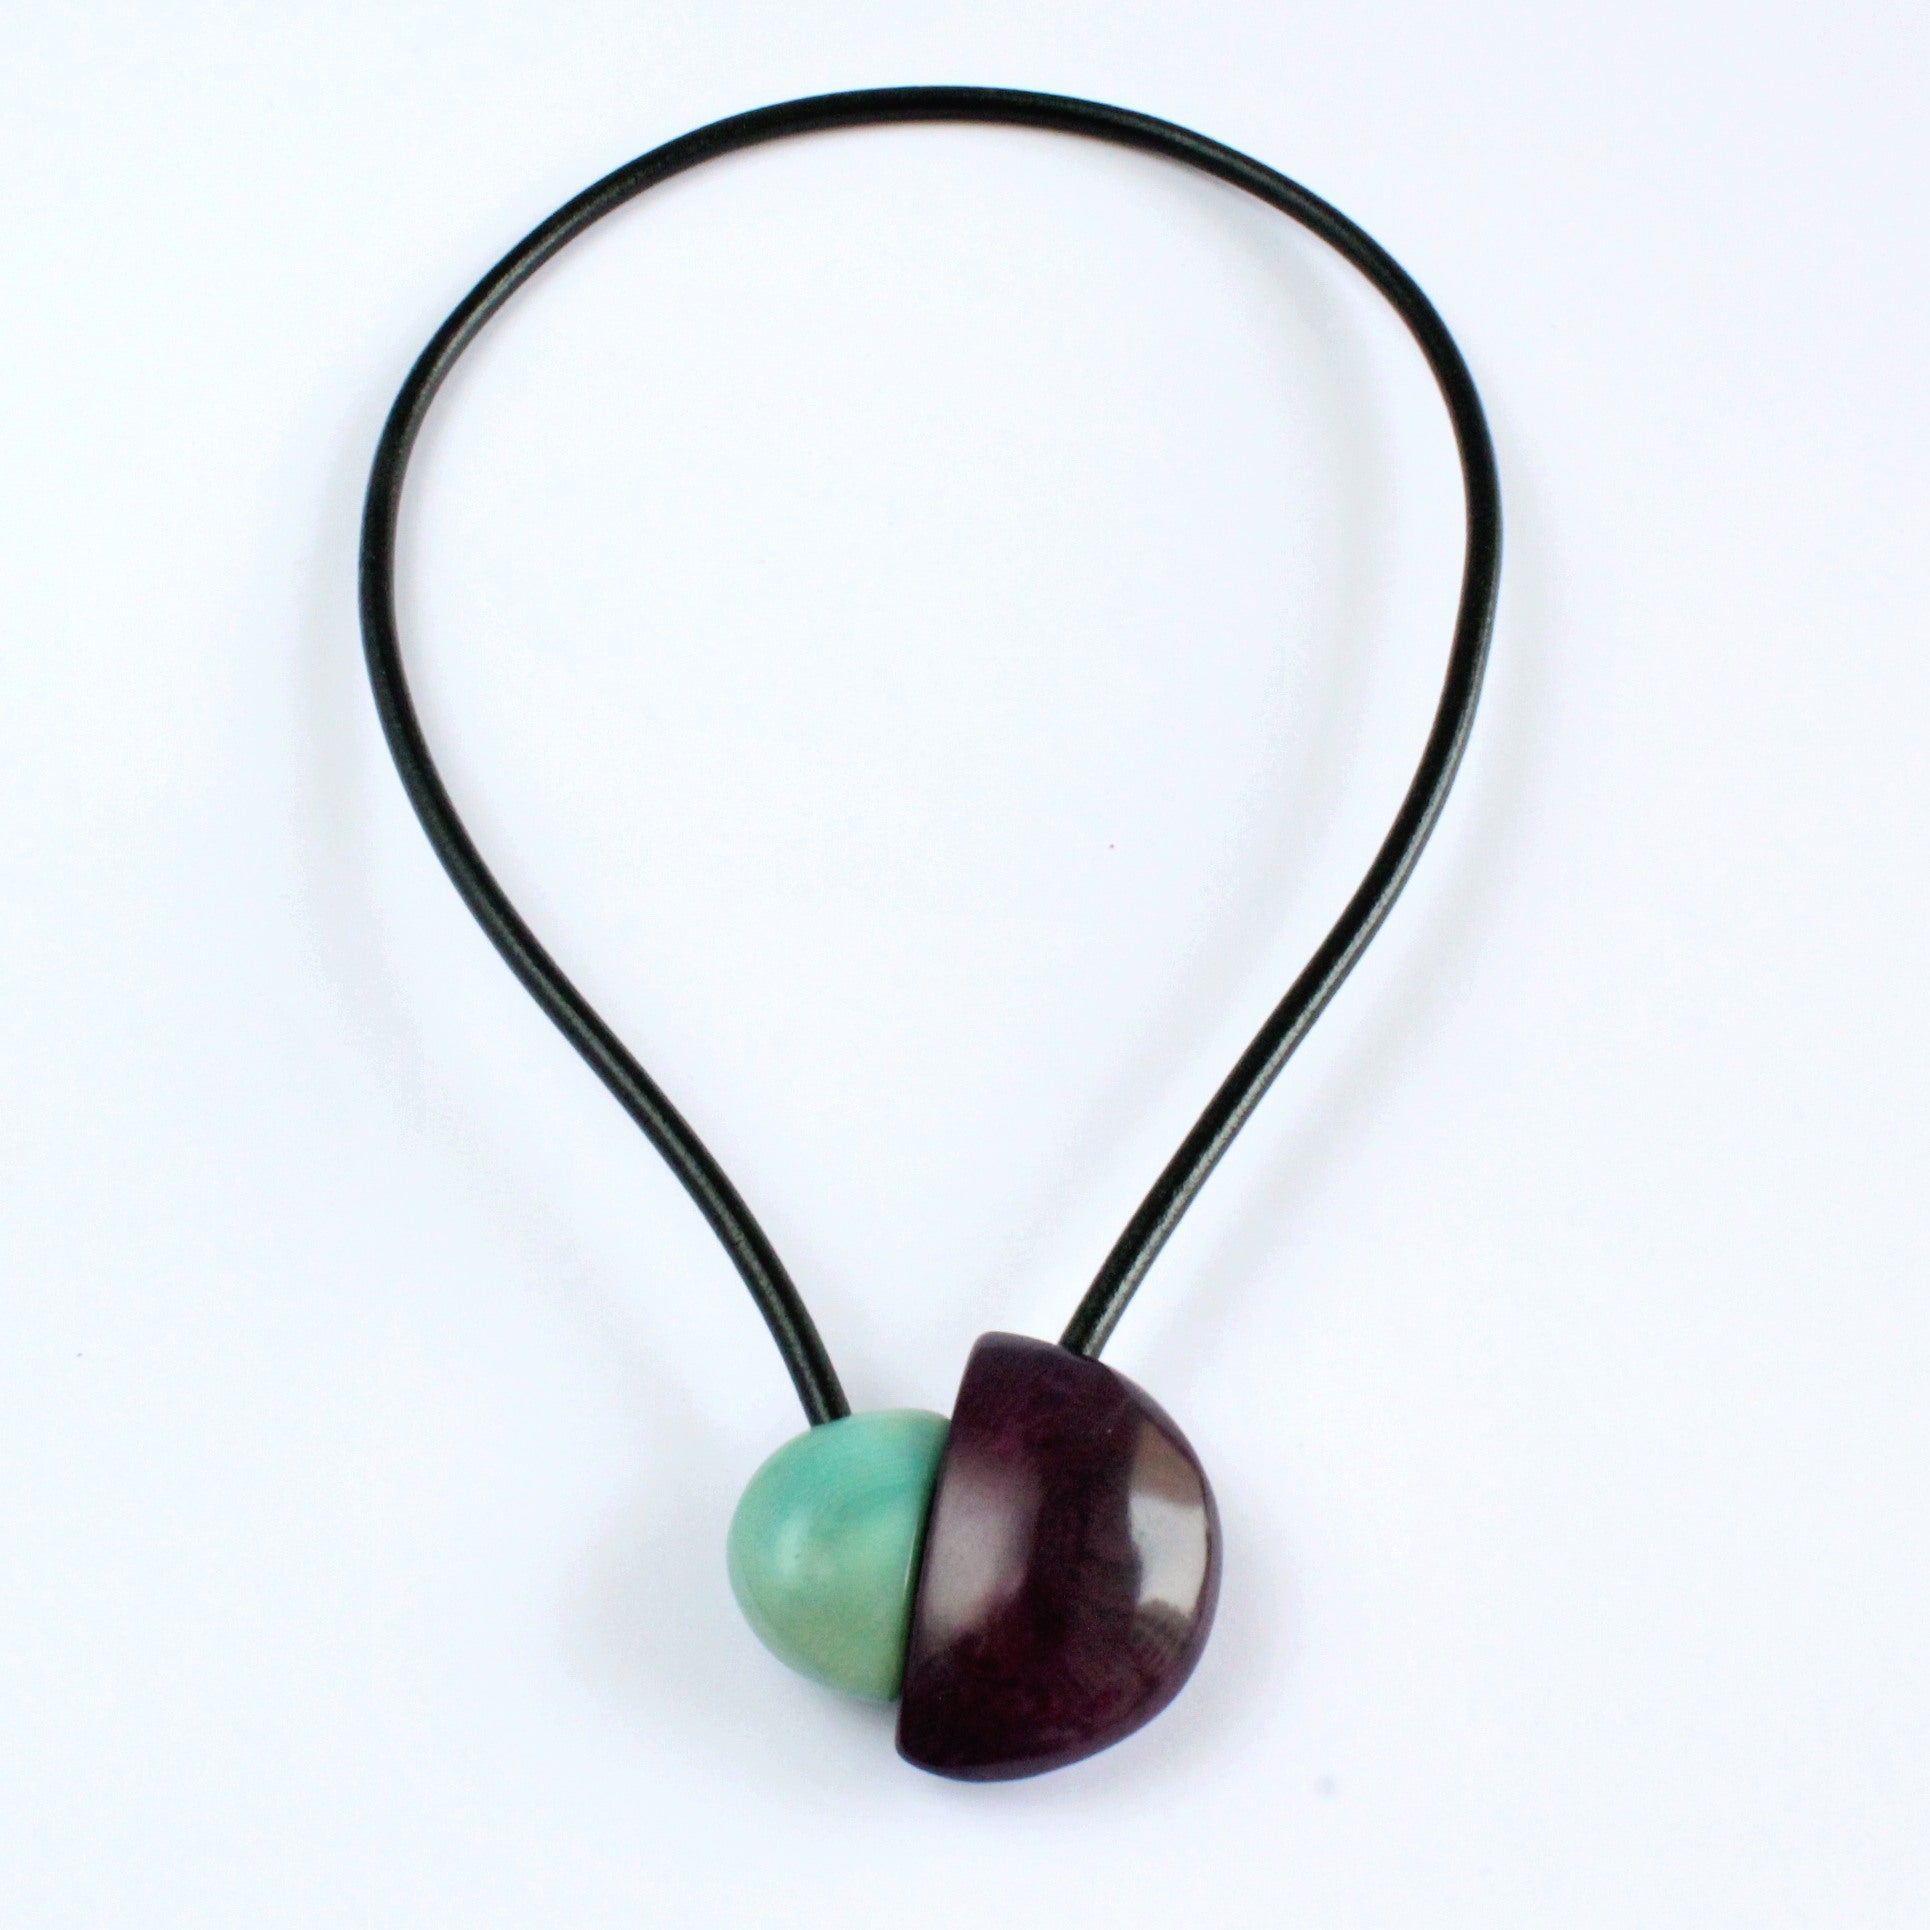 Handmade necklace, tagua nut, turquoise purple, magnetic